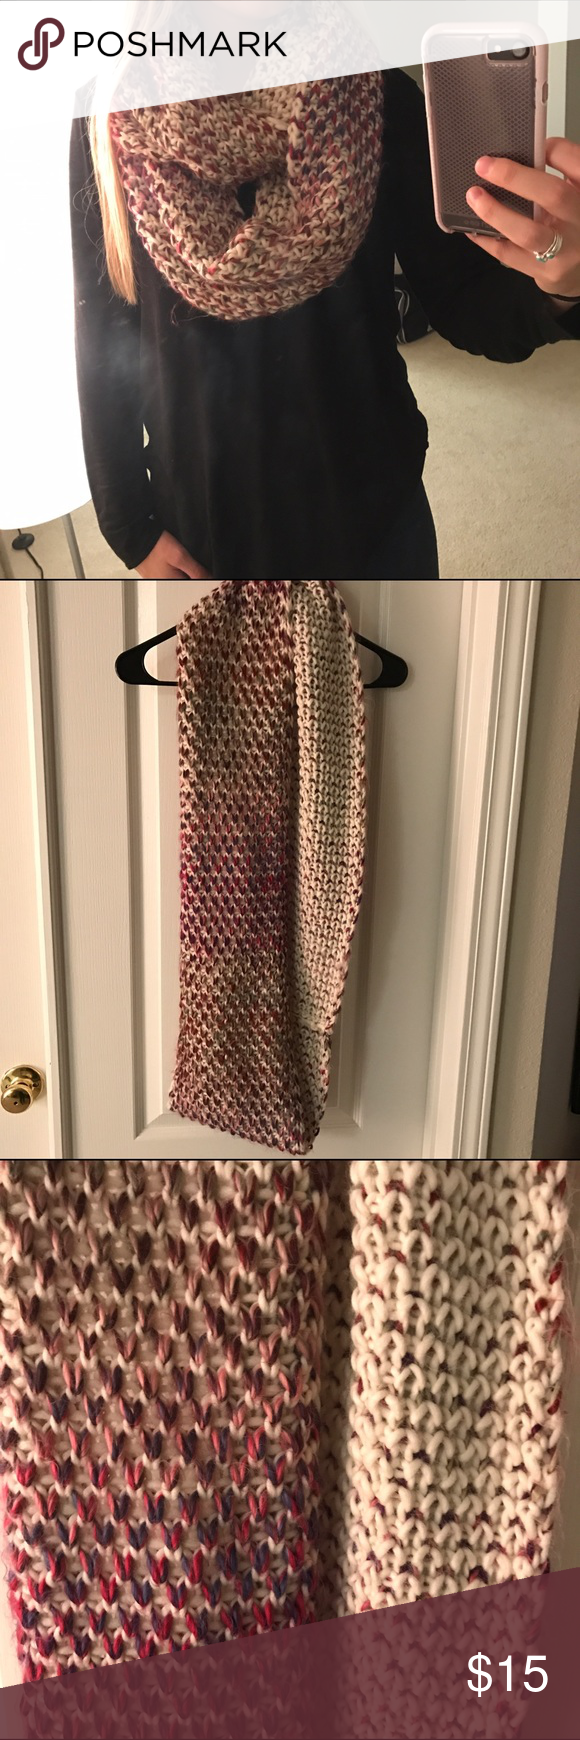 Old Navy Chunky Knit Infinity Scarf This Scarf can be worn for fashion and/or warmth. It's a blend of colors: purple, blue, pink, pale green, and cream. The inside is more cream which is fun to let show too. It is lightly worn. No trades please and thank you. ➡️➡️➡️ I'm open to reasonable offers, so make me one                                               The more you bundle the more you save ❣️ 10% off 2 items  15% off 3   20% off 4+ Just comment and let me know what discount you want so I…